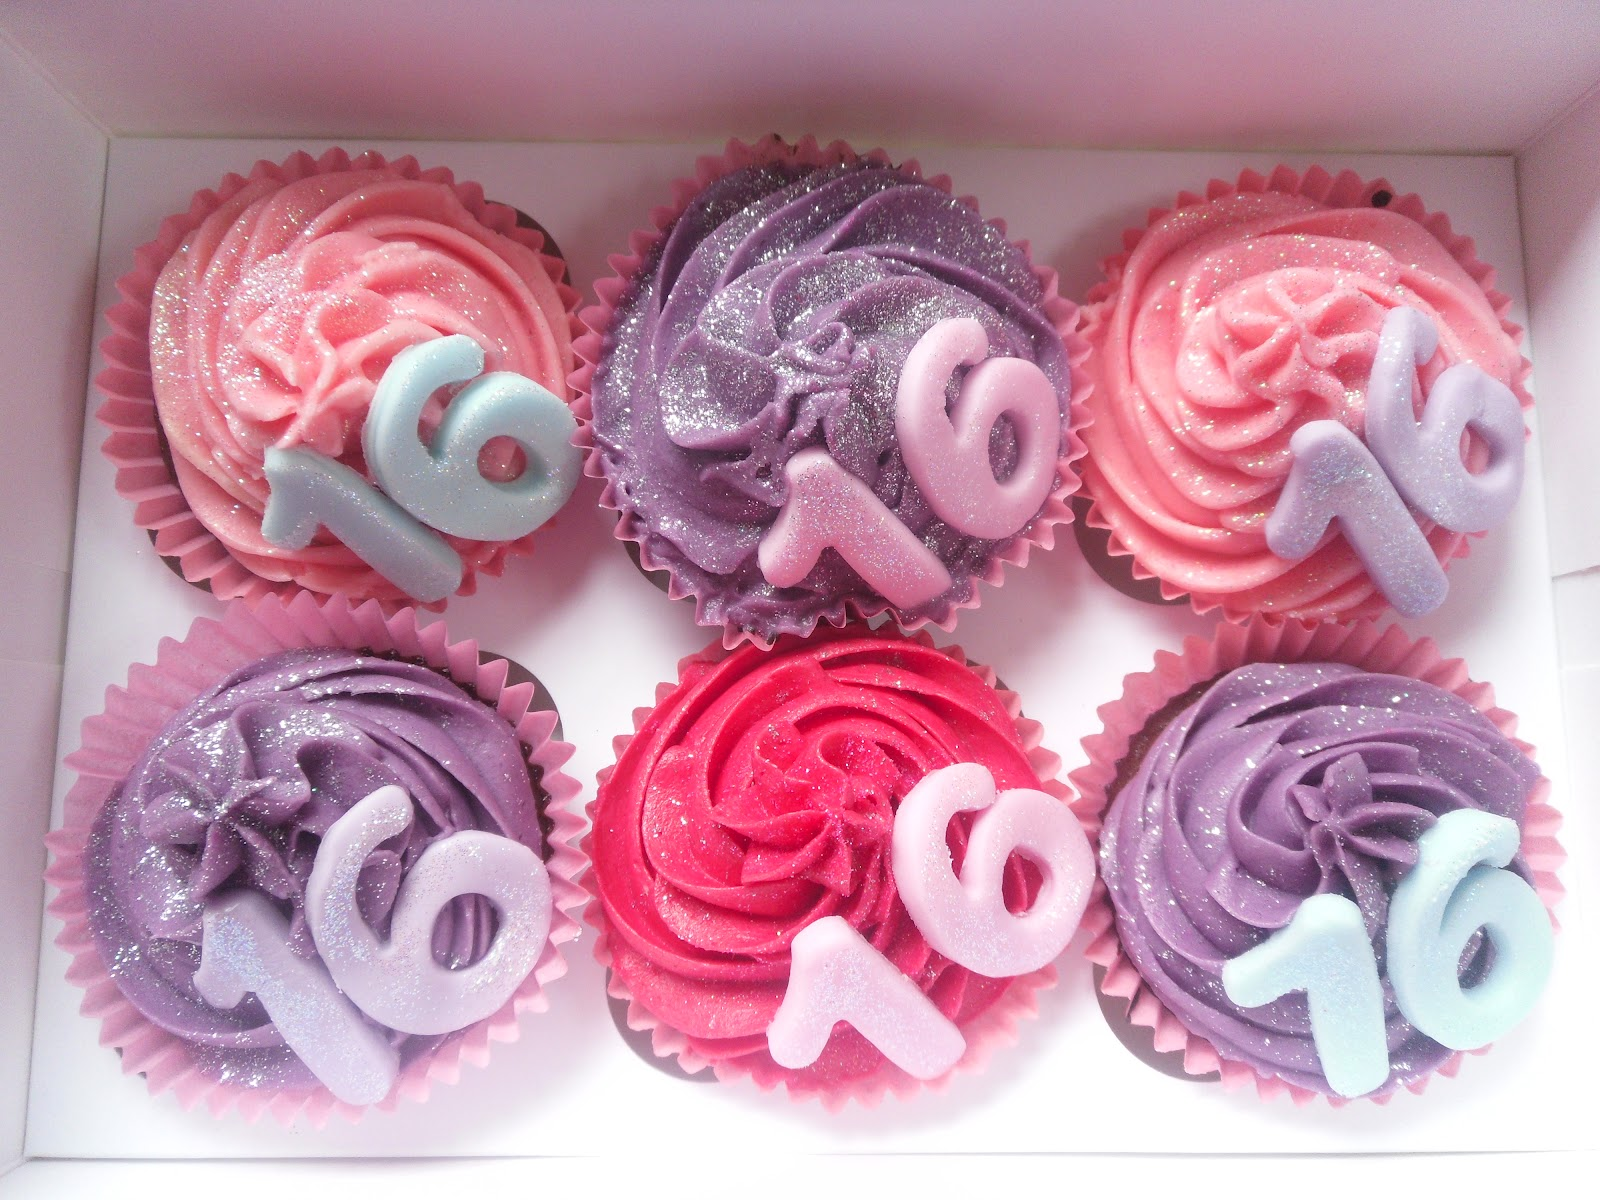 Cupcake Decorating Ideas For Sweet 16 : Sweetpea Bakery: Sweet 16 Cupcakes